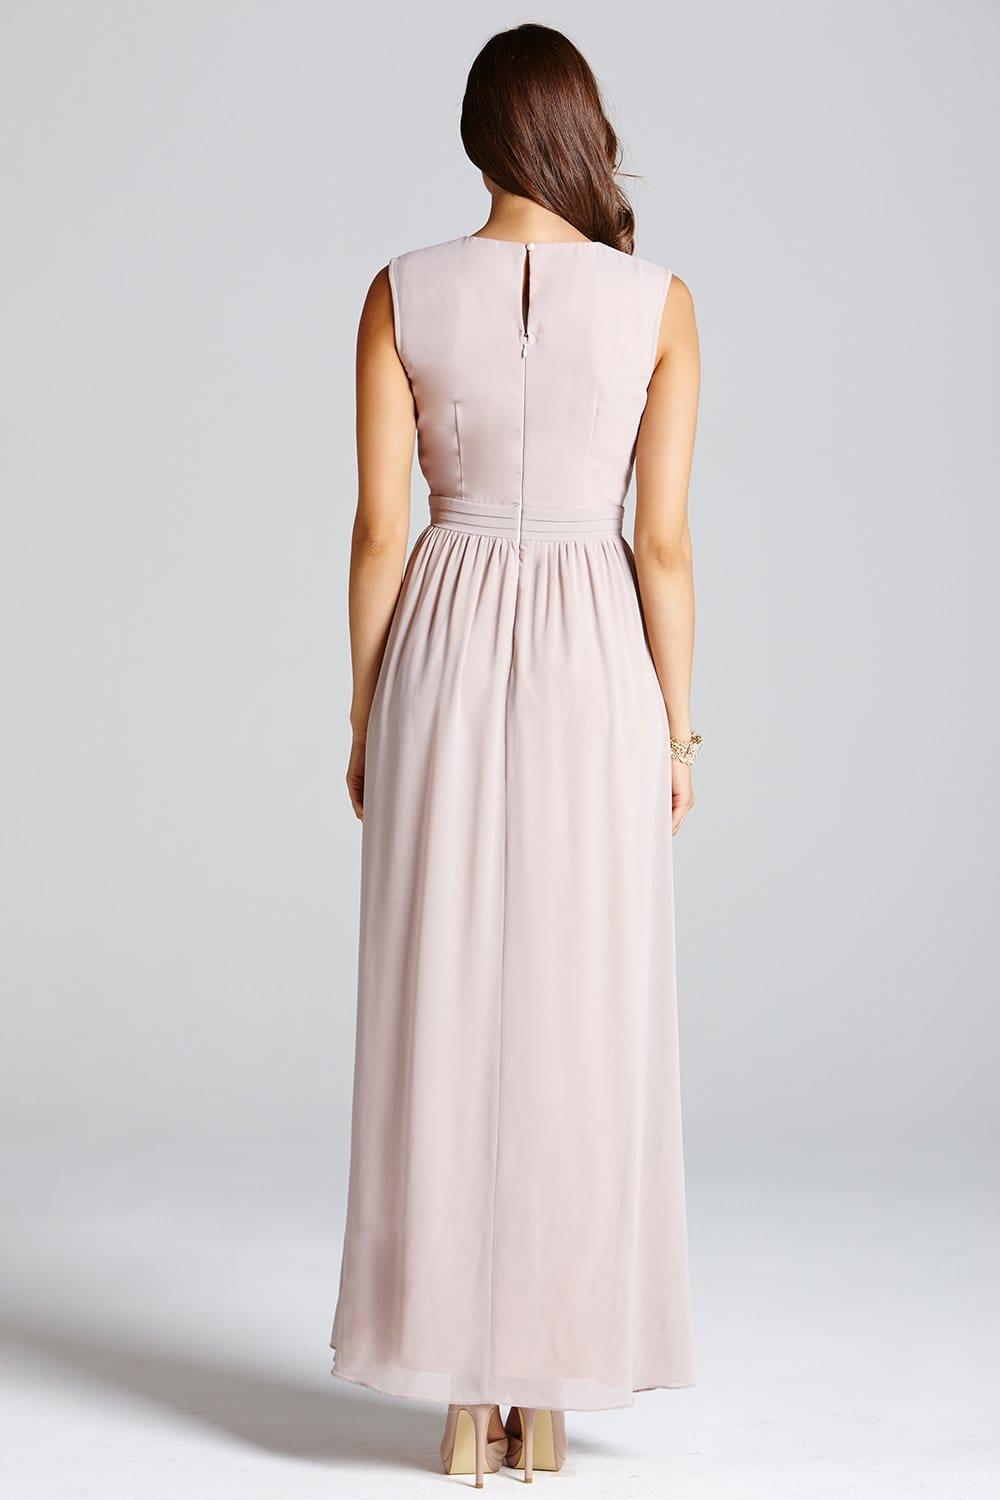 Nude Floral Embellished Bandeau Maxi Dress - from Little